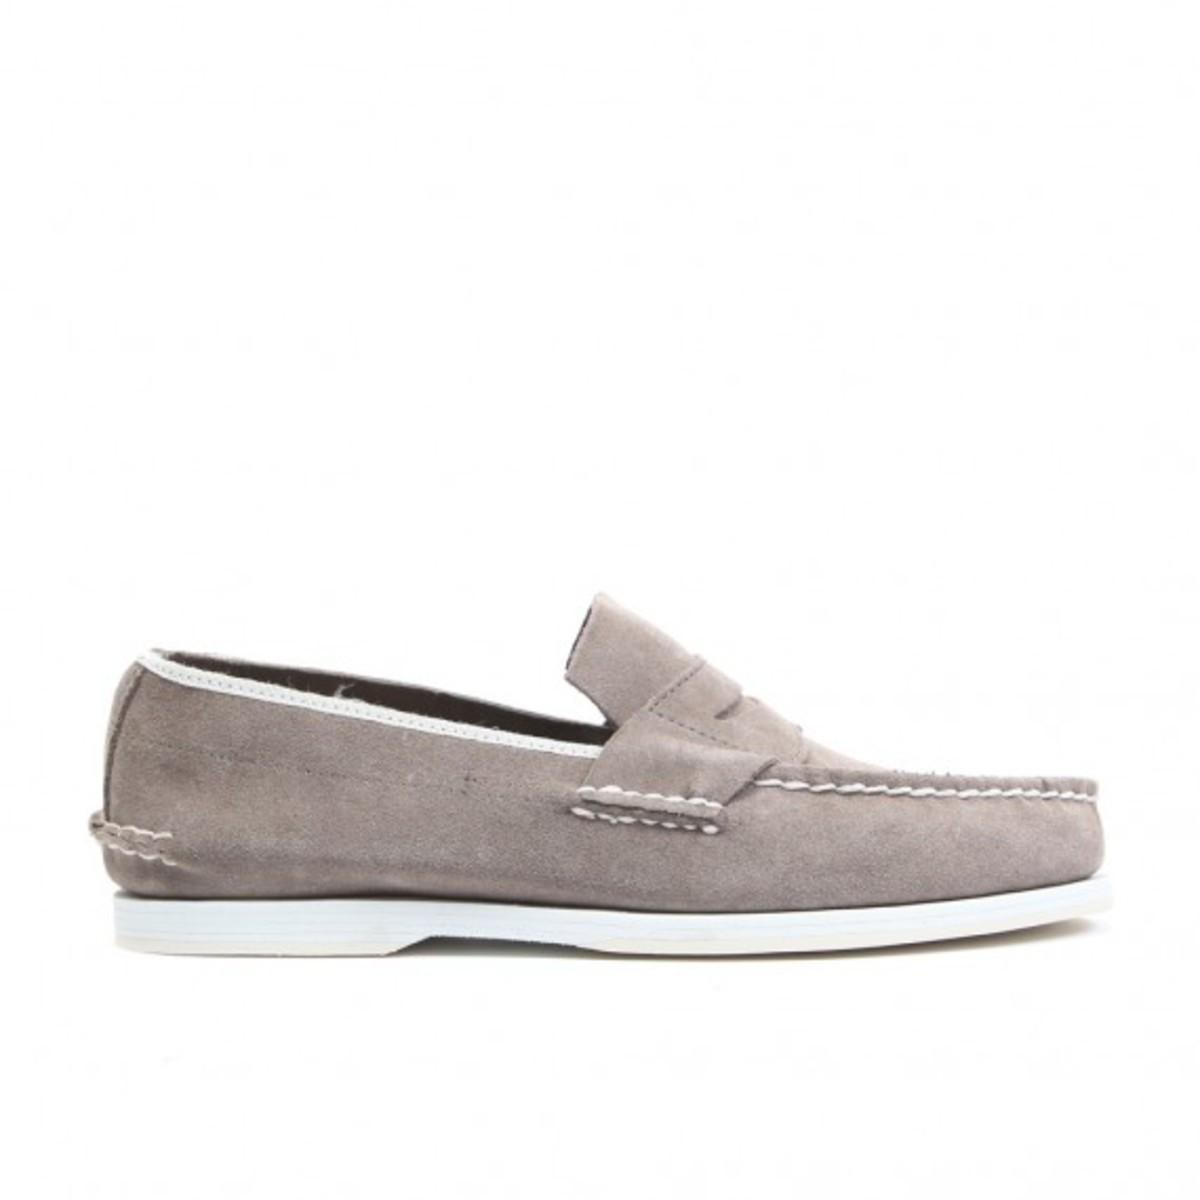 band_of_outsider_sperry_topsider_5